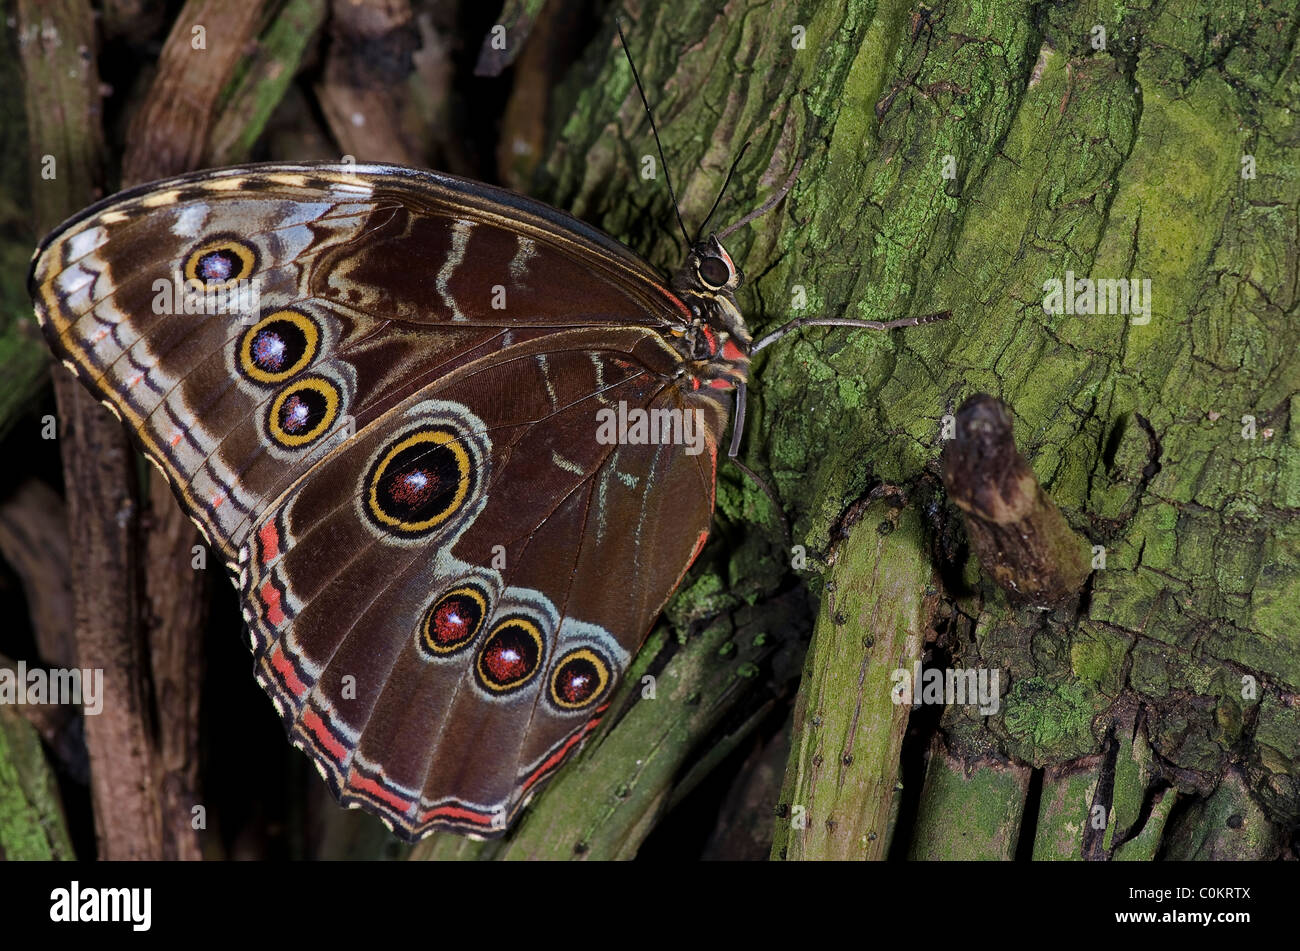 An Owl Butterfly,of the Nymphalidae family, native of South America and Mexico. - Stock Image